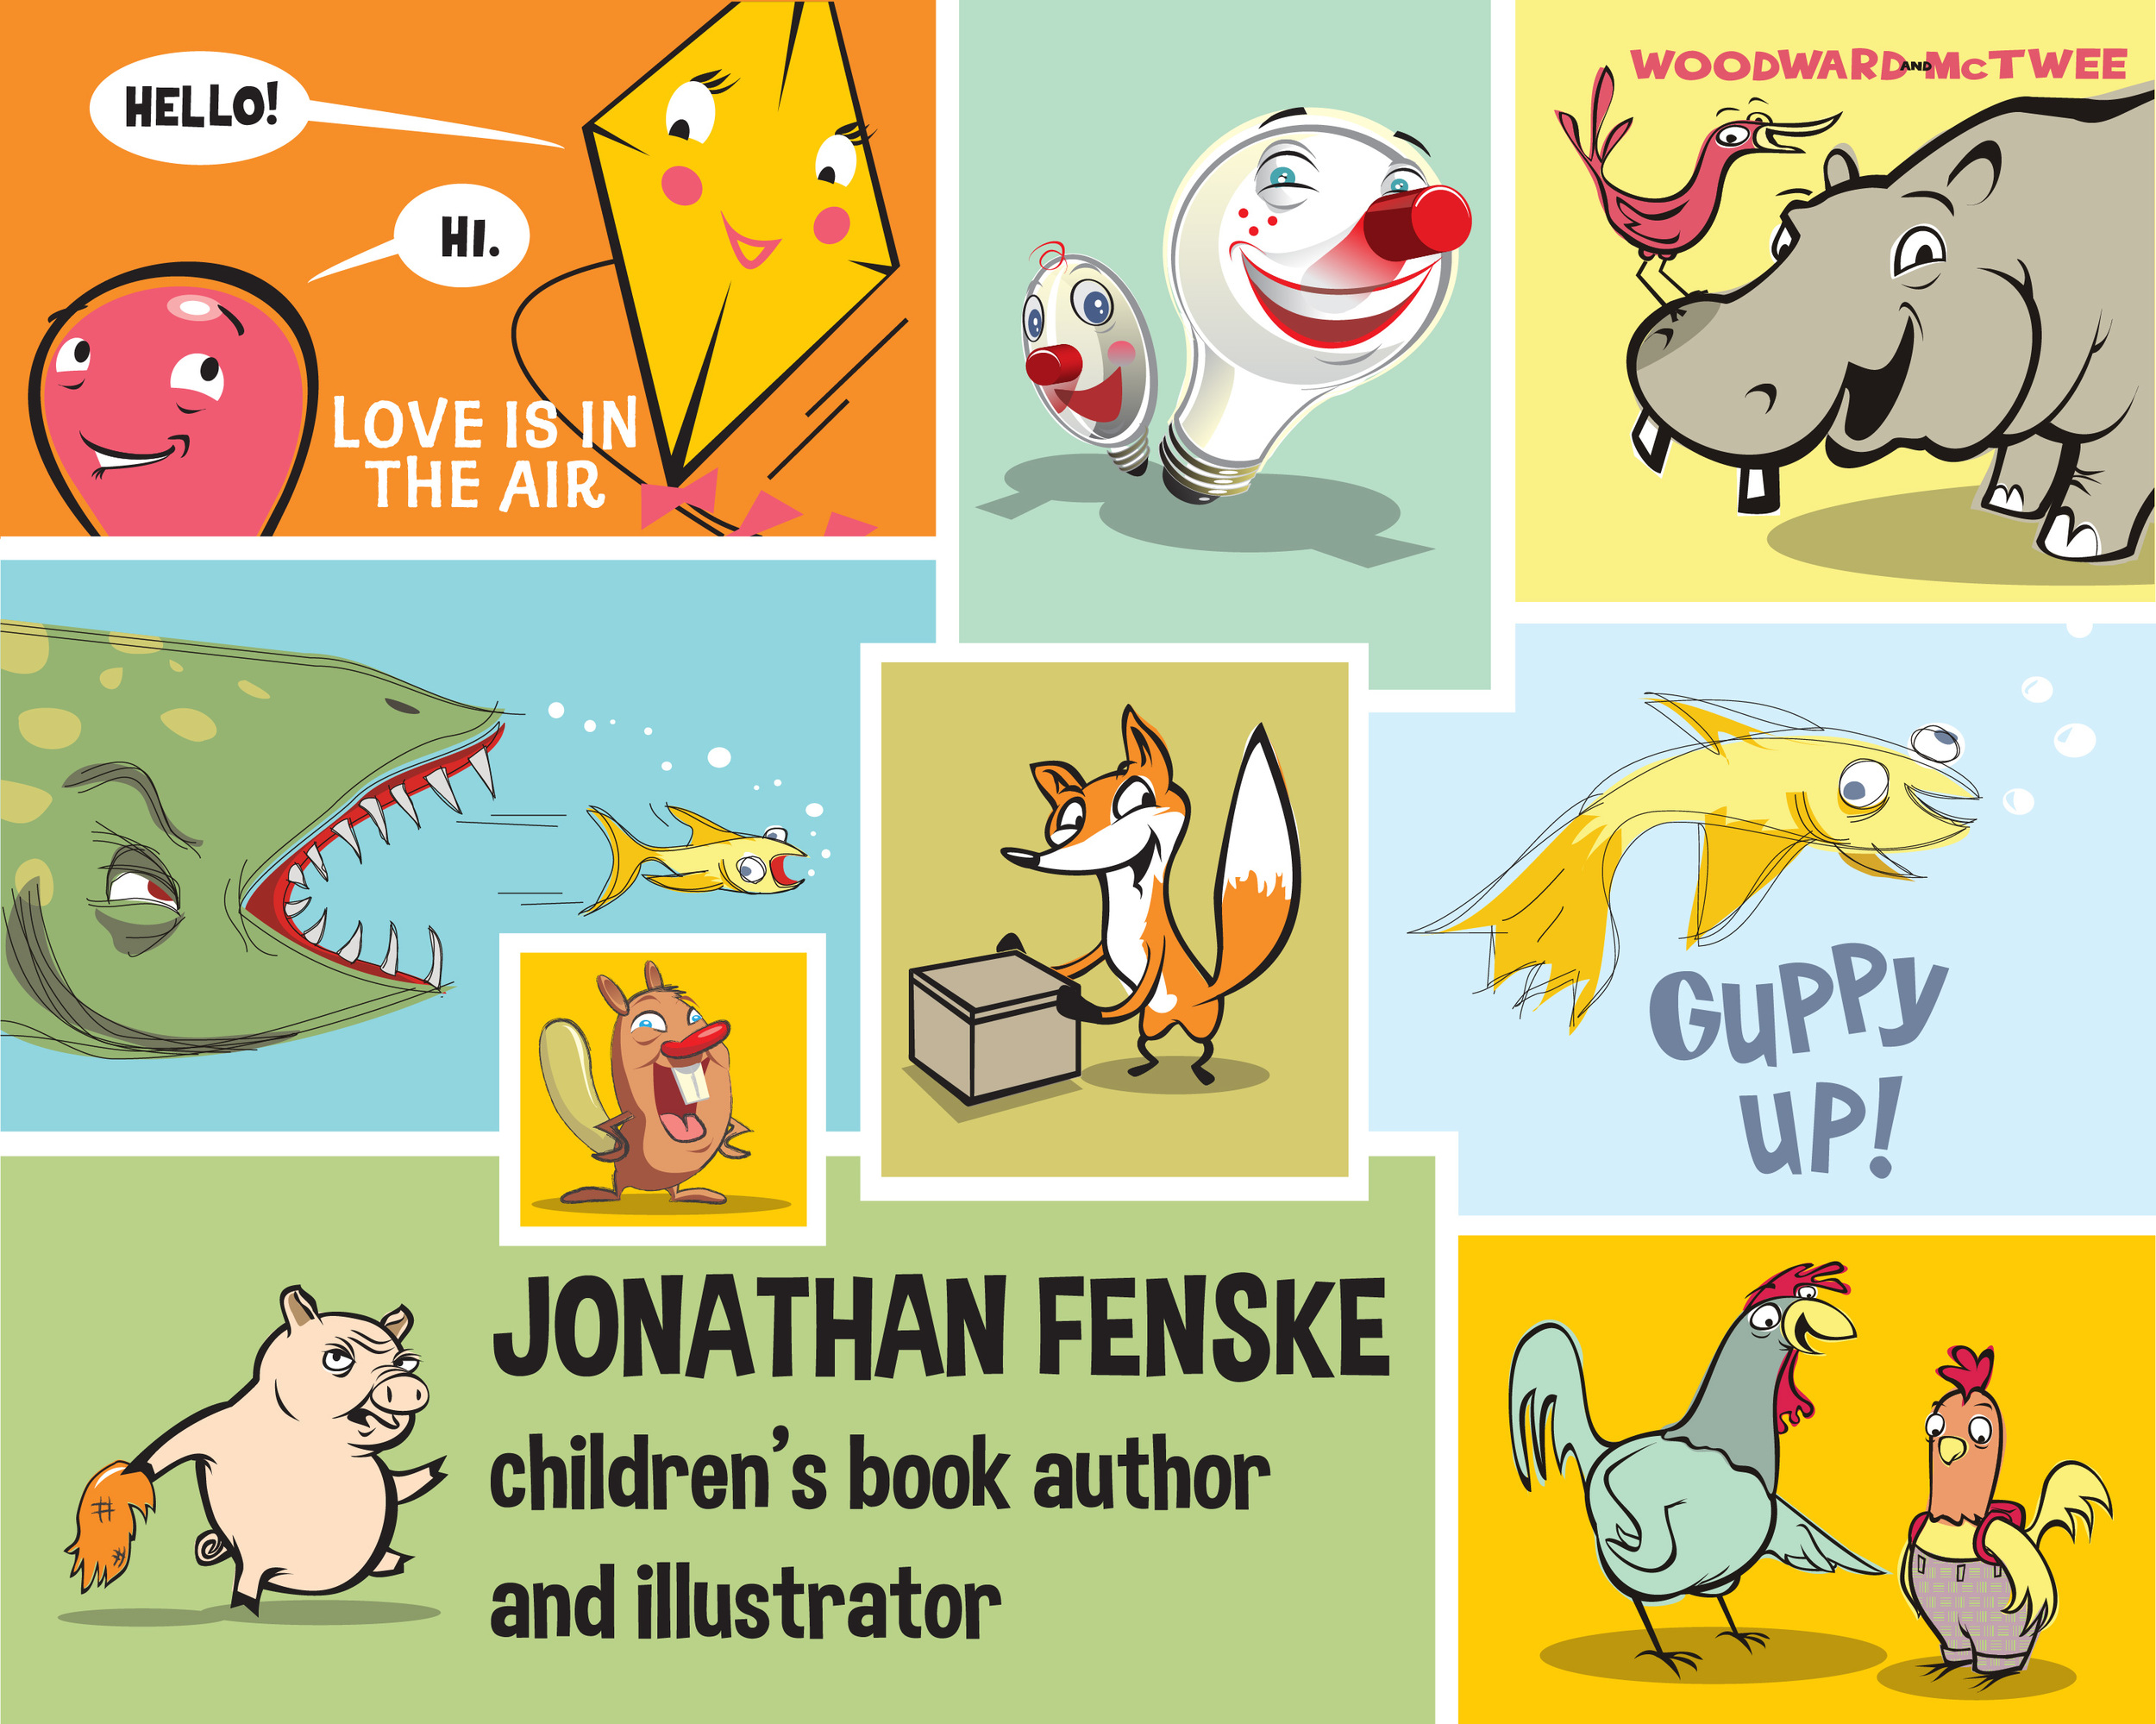 Illustrations of Jonathan Fenske's children's books